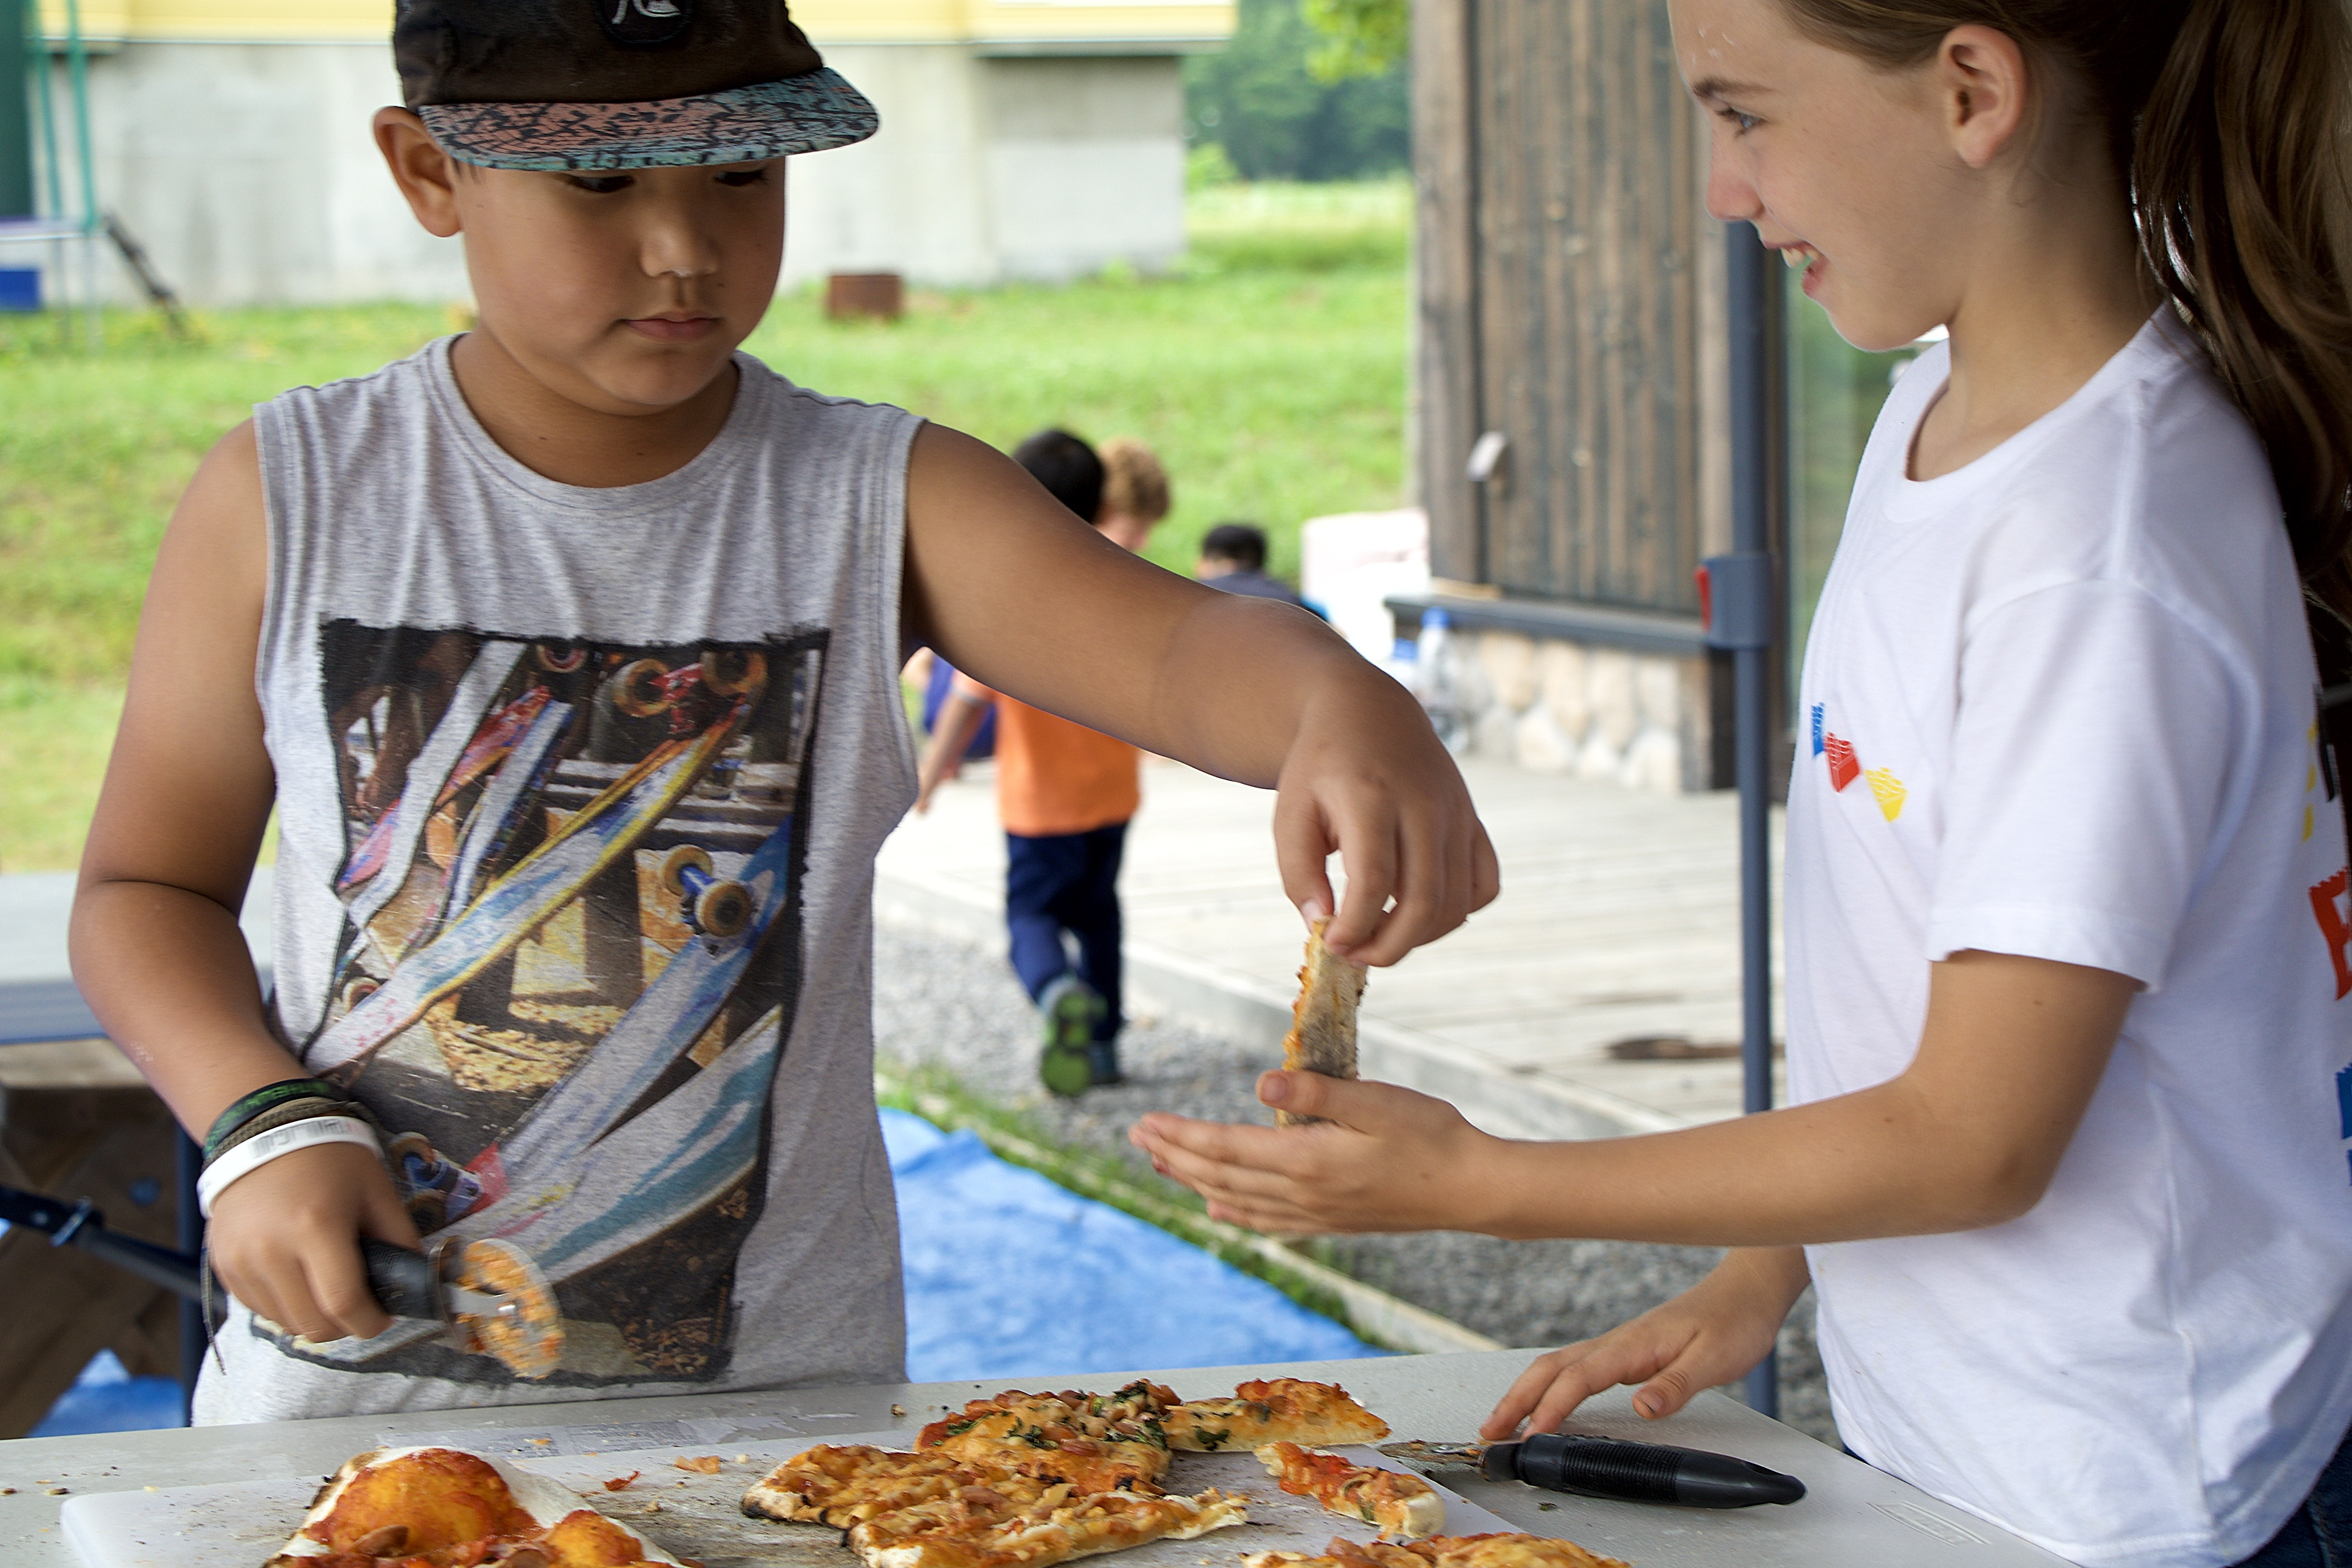 EdVenture will be offering a special program on the 15th of August from 11:00 - 15:00 o'clock. The outdoor activities that children will be able to enjoy at The Orchards are: fun team games, pizza masterclass (lunch included) and kokedama making. The EdVenture team will be offering pick up from 10:30 am at Mount Kiosk (next to the Welcome Centre).                                           ***Please note that all the activities of the program will be only in English, but there will be some Japanese staff at the location.                                      ***Min age accepted is 3 years old                                                                                                                                                        ***All participating children must be toilet trained                                 EdVenture(エドベンチャー)は、ヨガクラスに保護者が参加されるお子様を対象とした特別プログラムを提供します。楽しいチームゲーム、ピザマスタークラス(ランチ込み)、こけだま作りのプログラムがあります。会場は、オーチャードです。EdVenture担当者が、午前10時30分にひらふウェルカムセンターの隣のキオスクにてお子様の送迎をいたします。 ***プログラムのアクティビティはすべて英語でのみ行われますが、会場には日本人スタッフもいます。 ***3歳以上の、トイレのトレーニングが完了しているお子様が対象です。アレルギーなどの特記事項はお申し込み時にお知らせください。詳細はお問い合わせください。